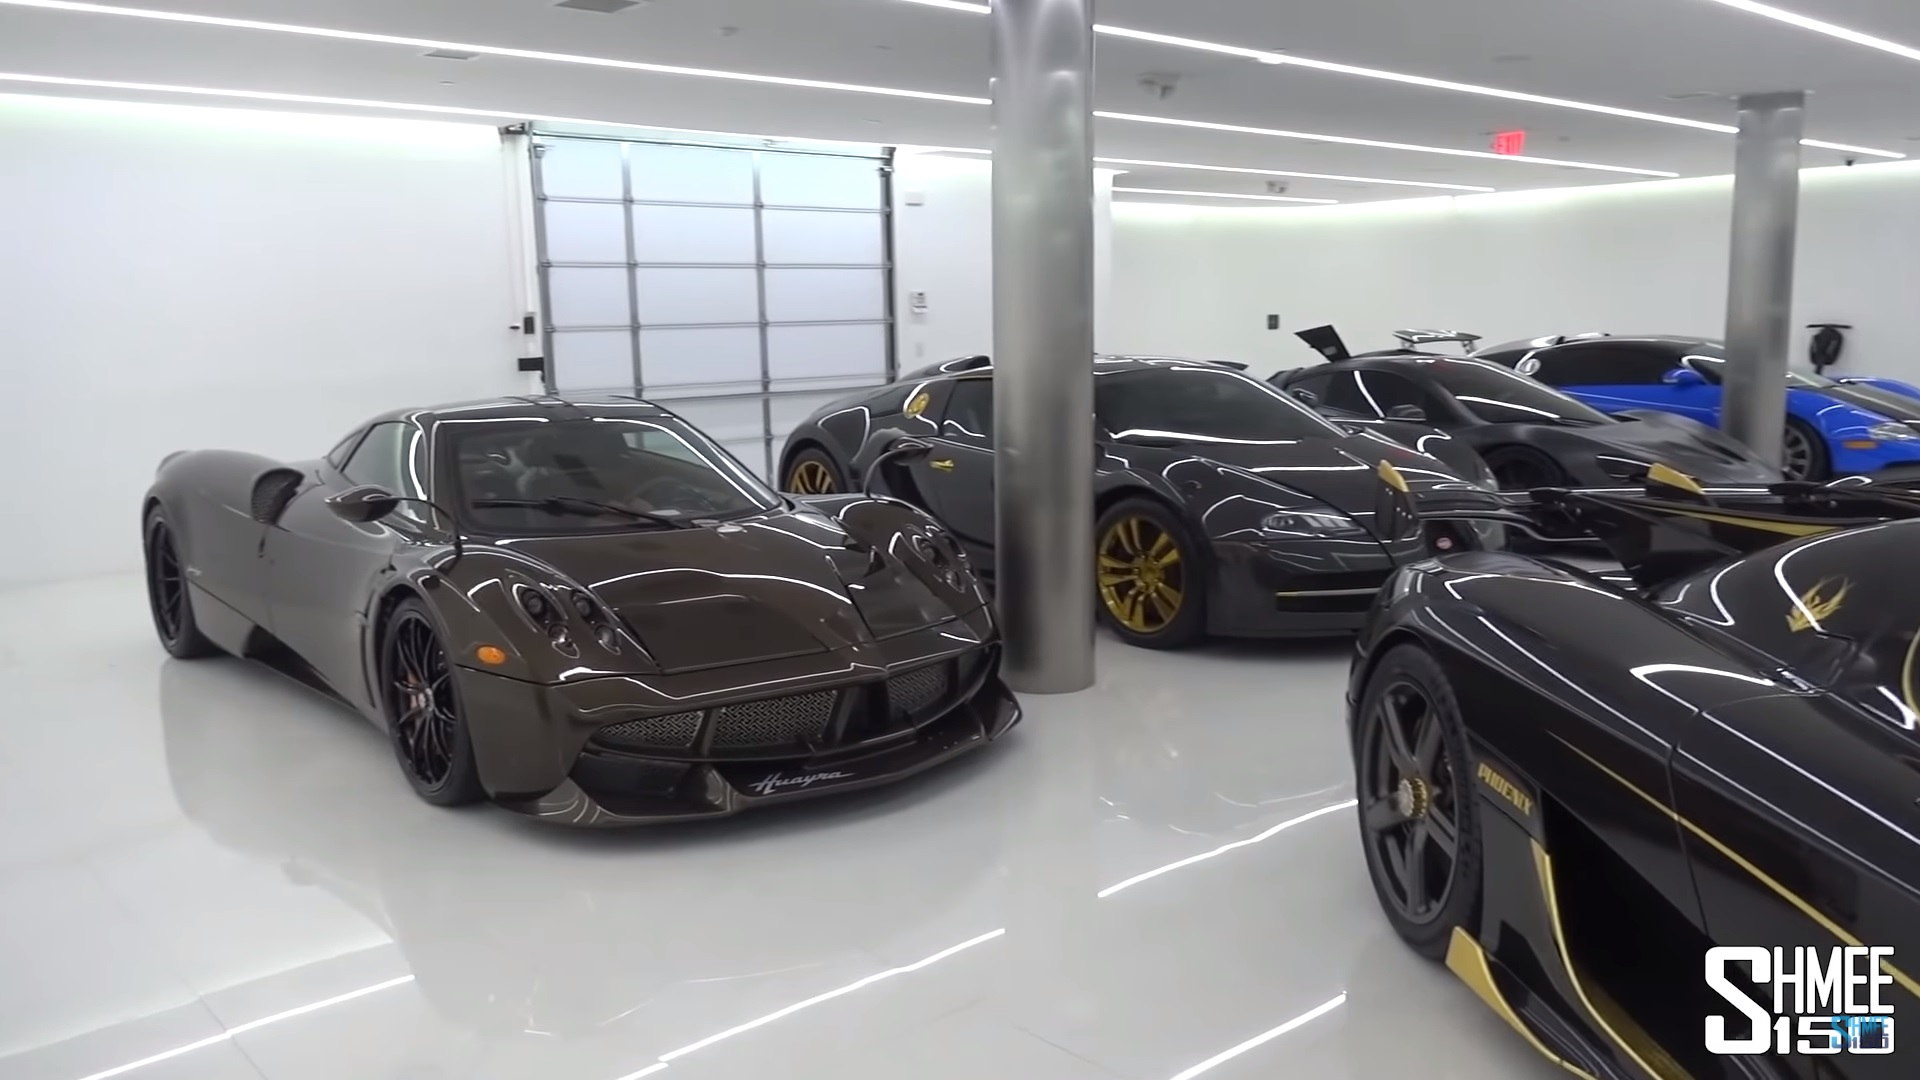 Iranian real estate tycoon has one of the sickest car for Garage sees automobile